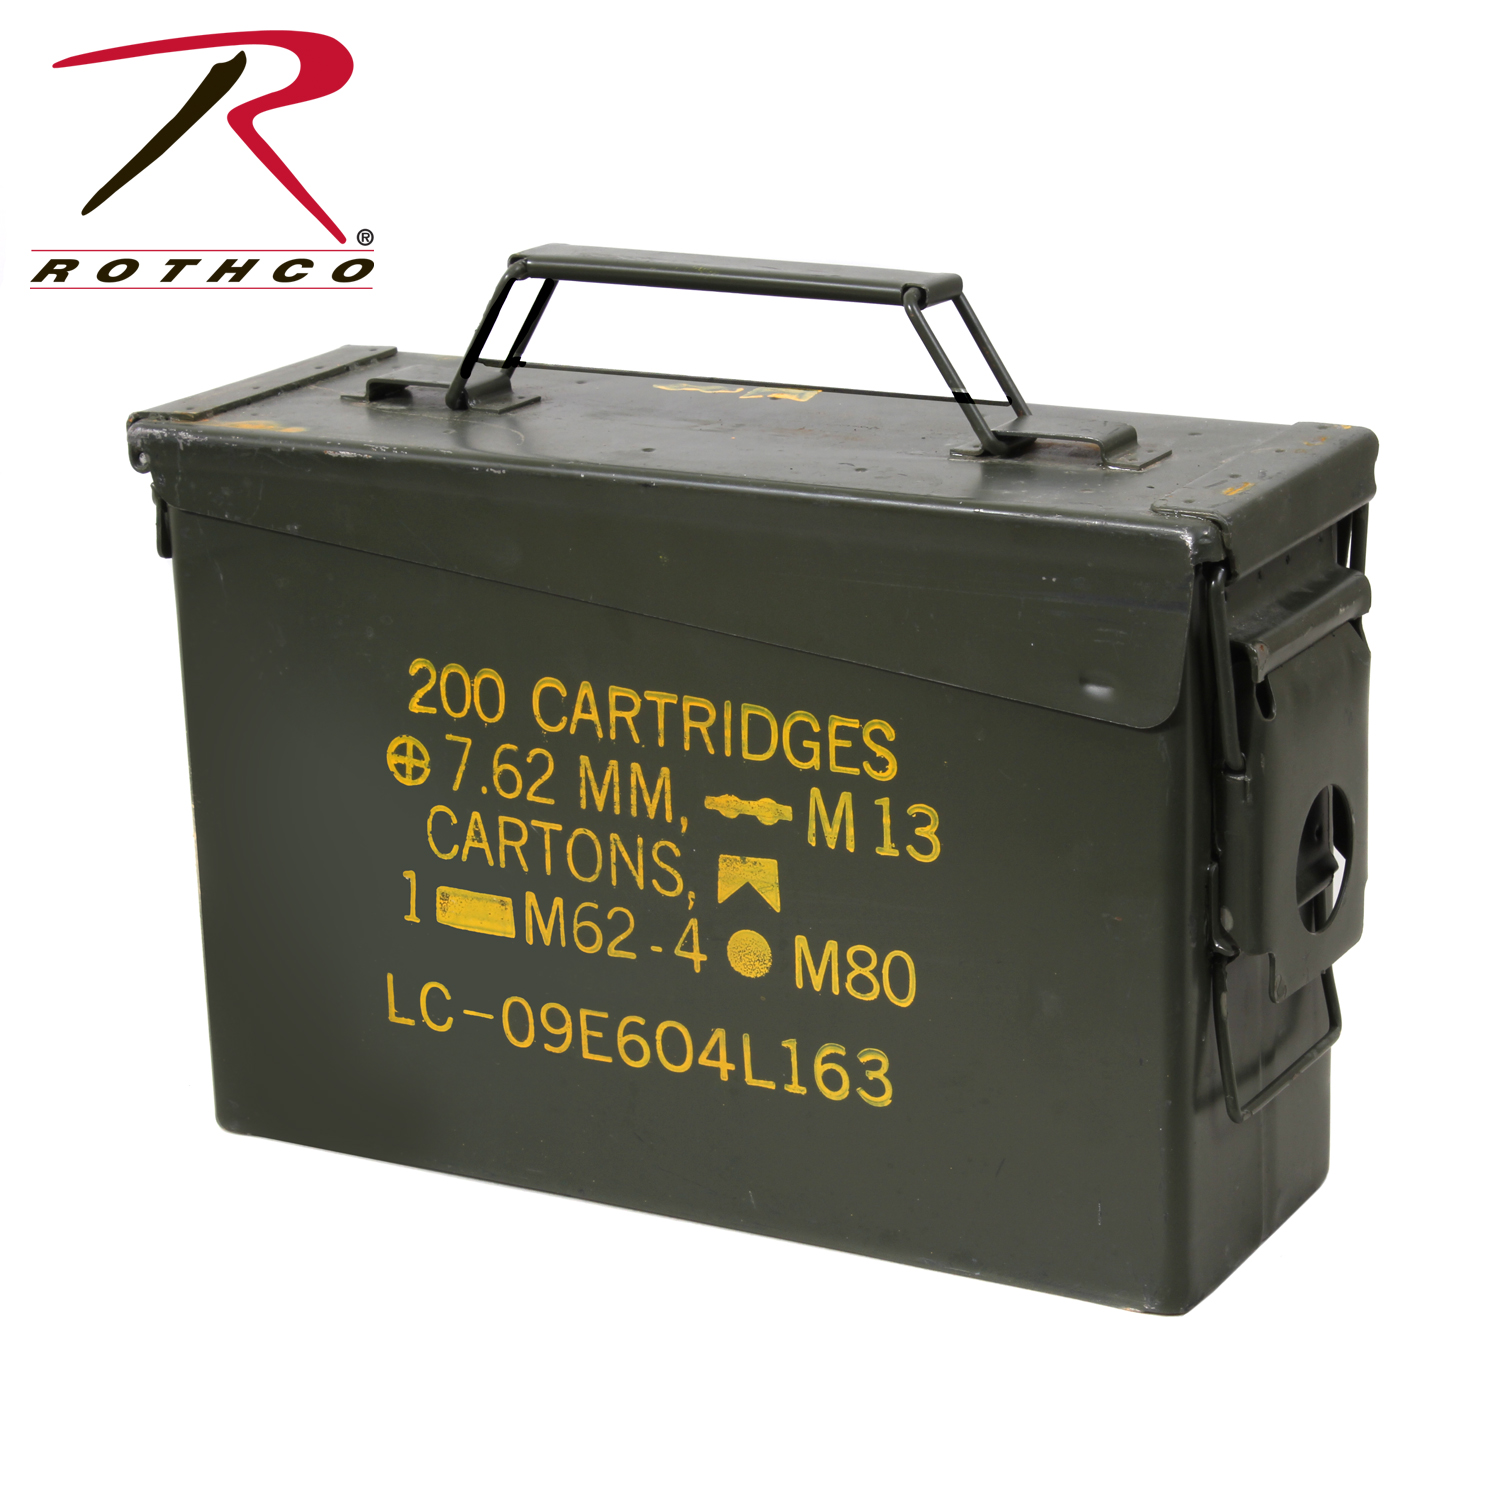 GI 30 50 Caliber Ammo Cans Surplus